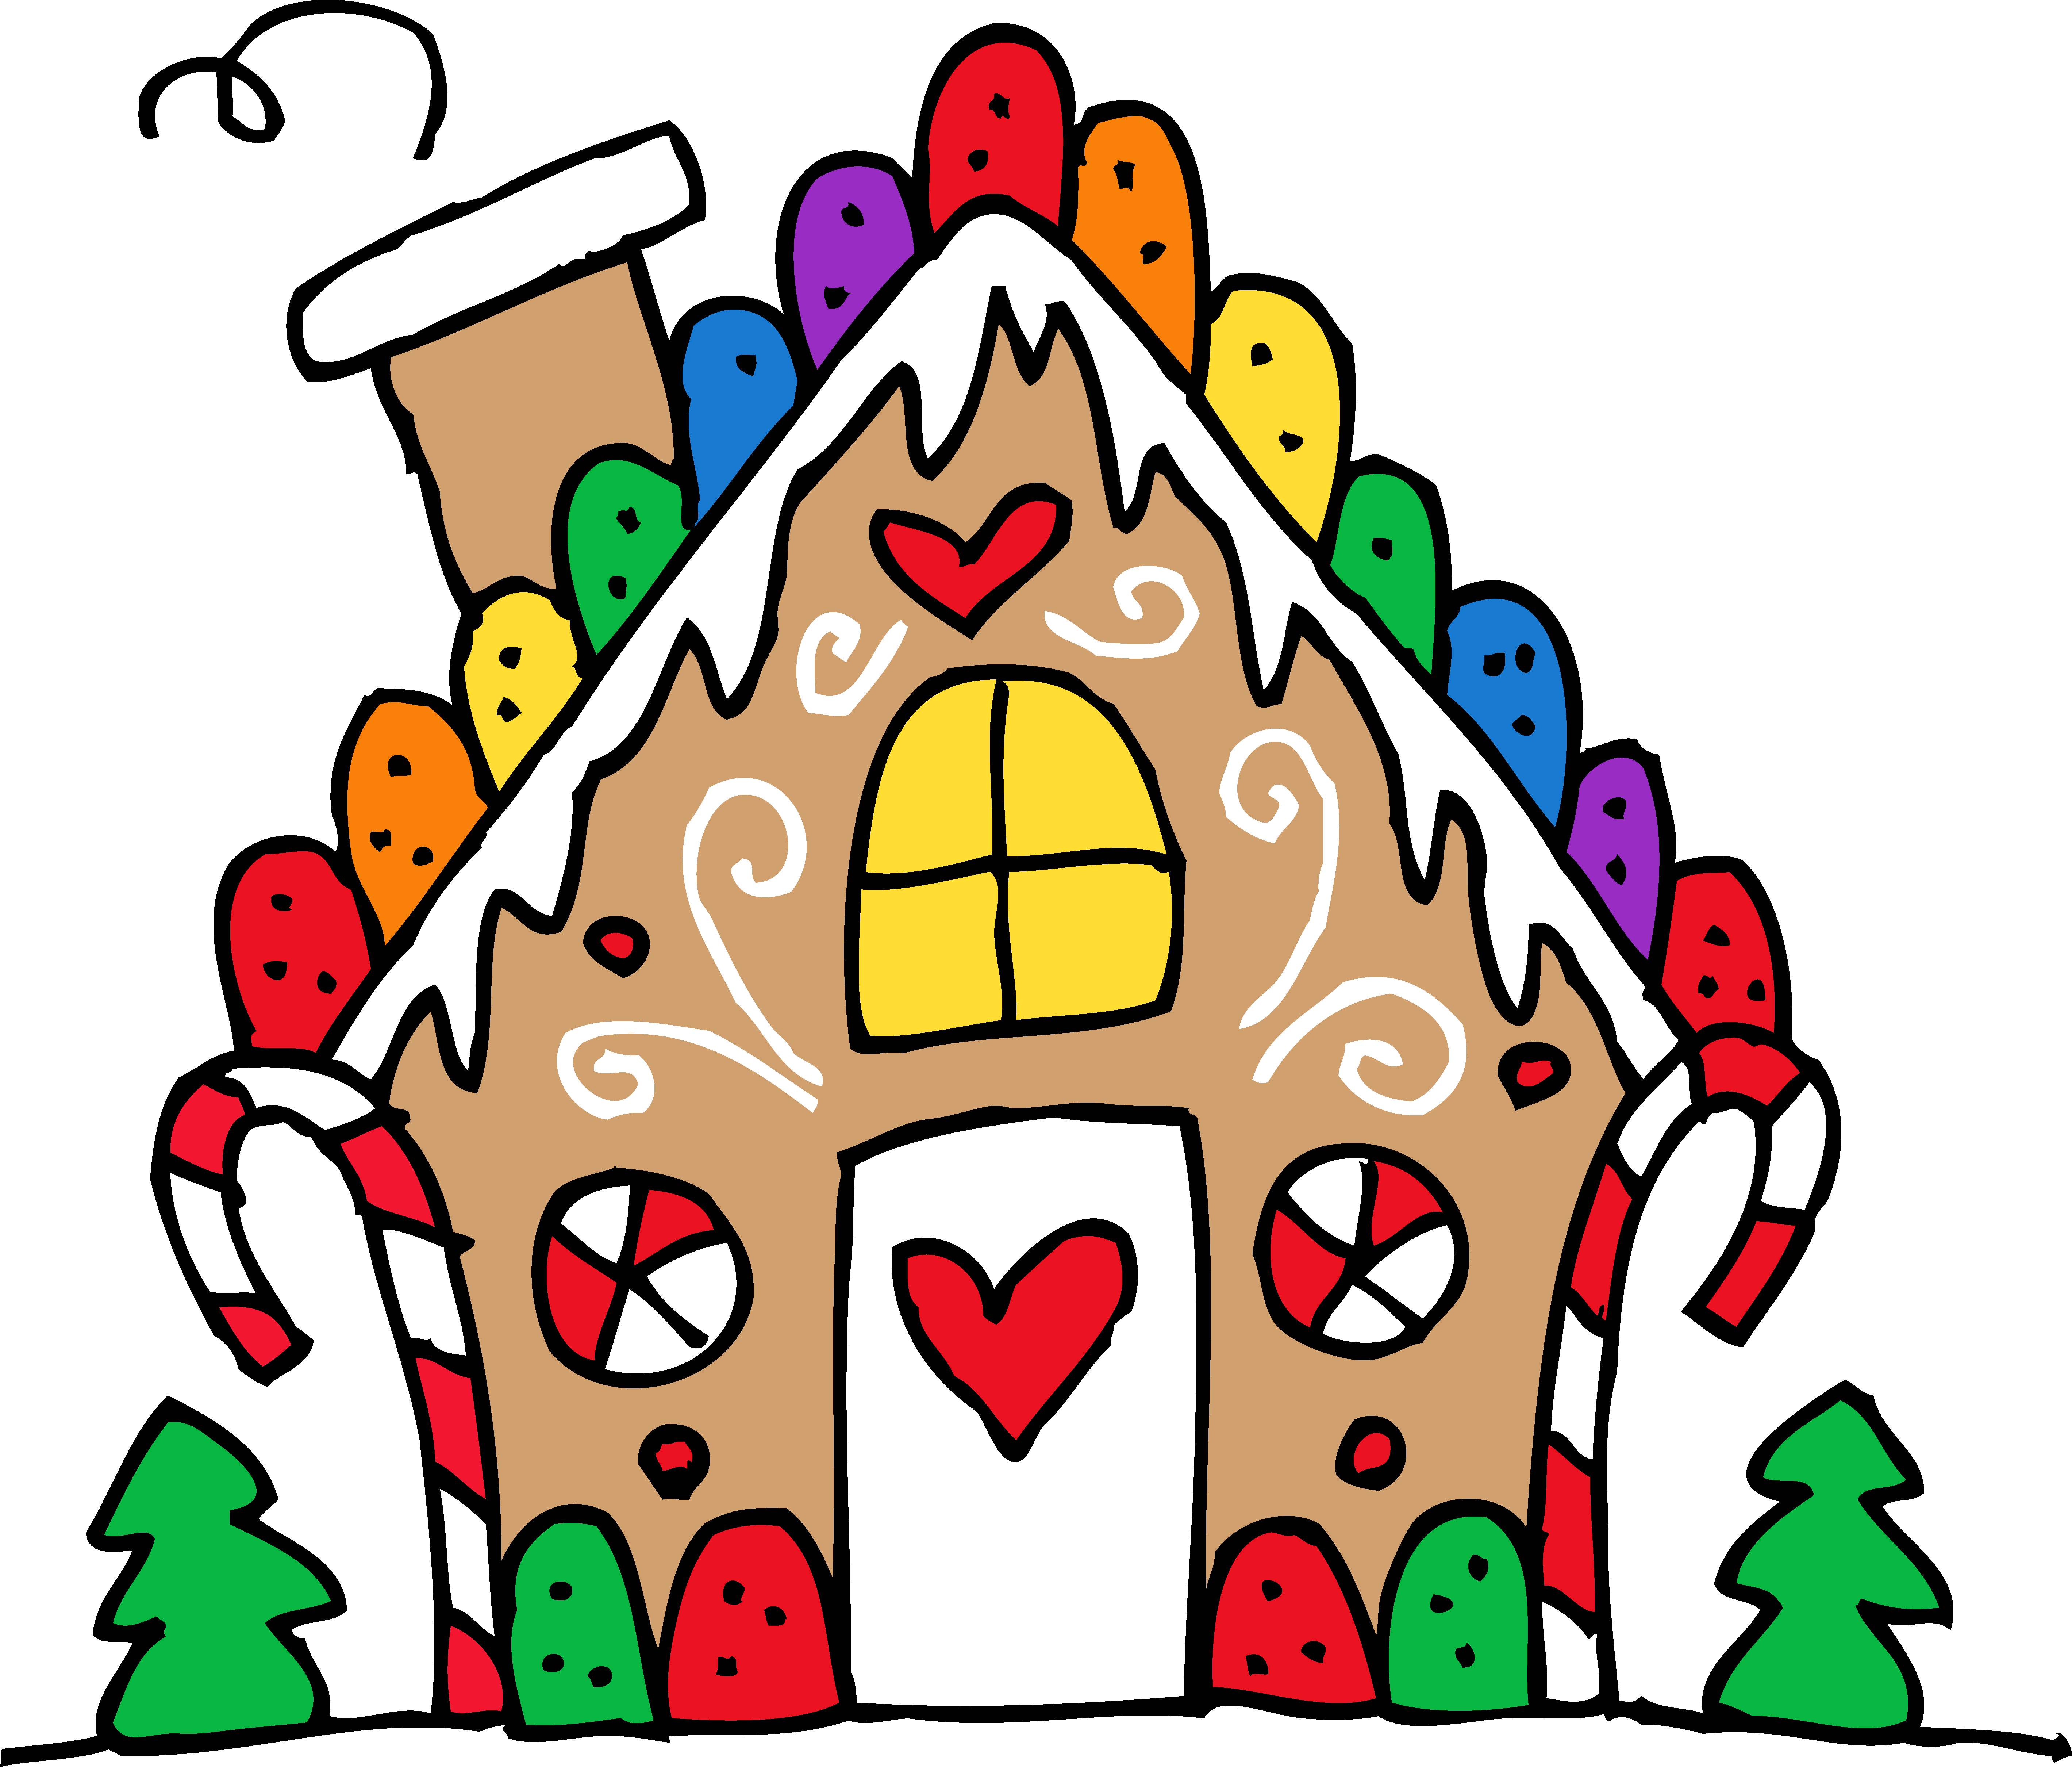 Fire clipart building. Cute gingerbread house